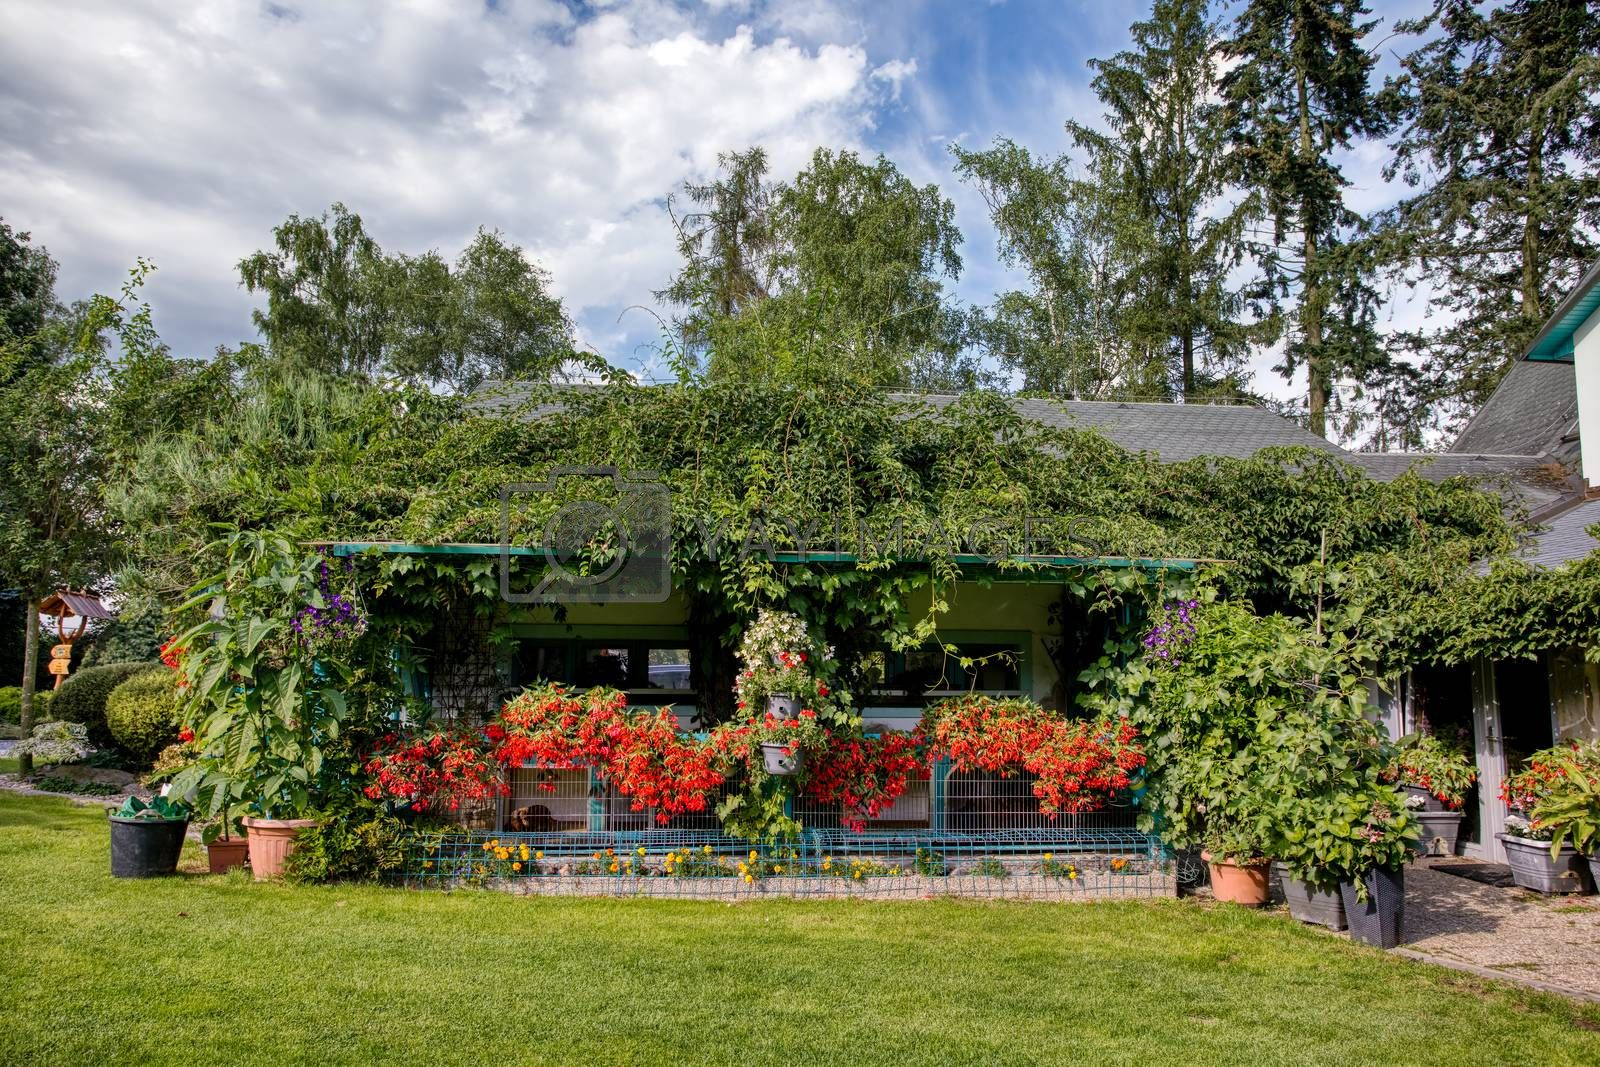 Beautiful summer garden with conifer trees, green grass and evening sun. Cut grass, Professional luxury gardening concept.Pergola with red Begonia boliviensis and petunia sufinia flowers